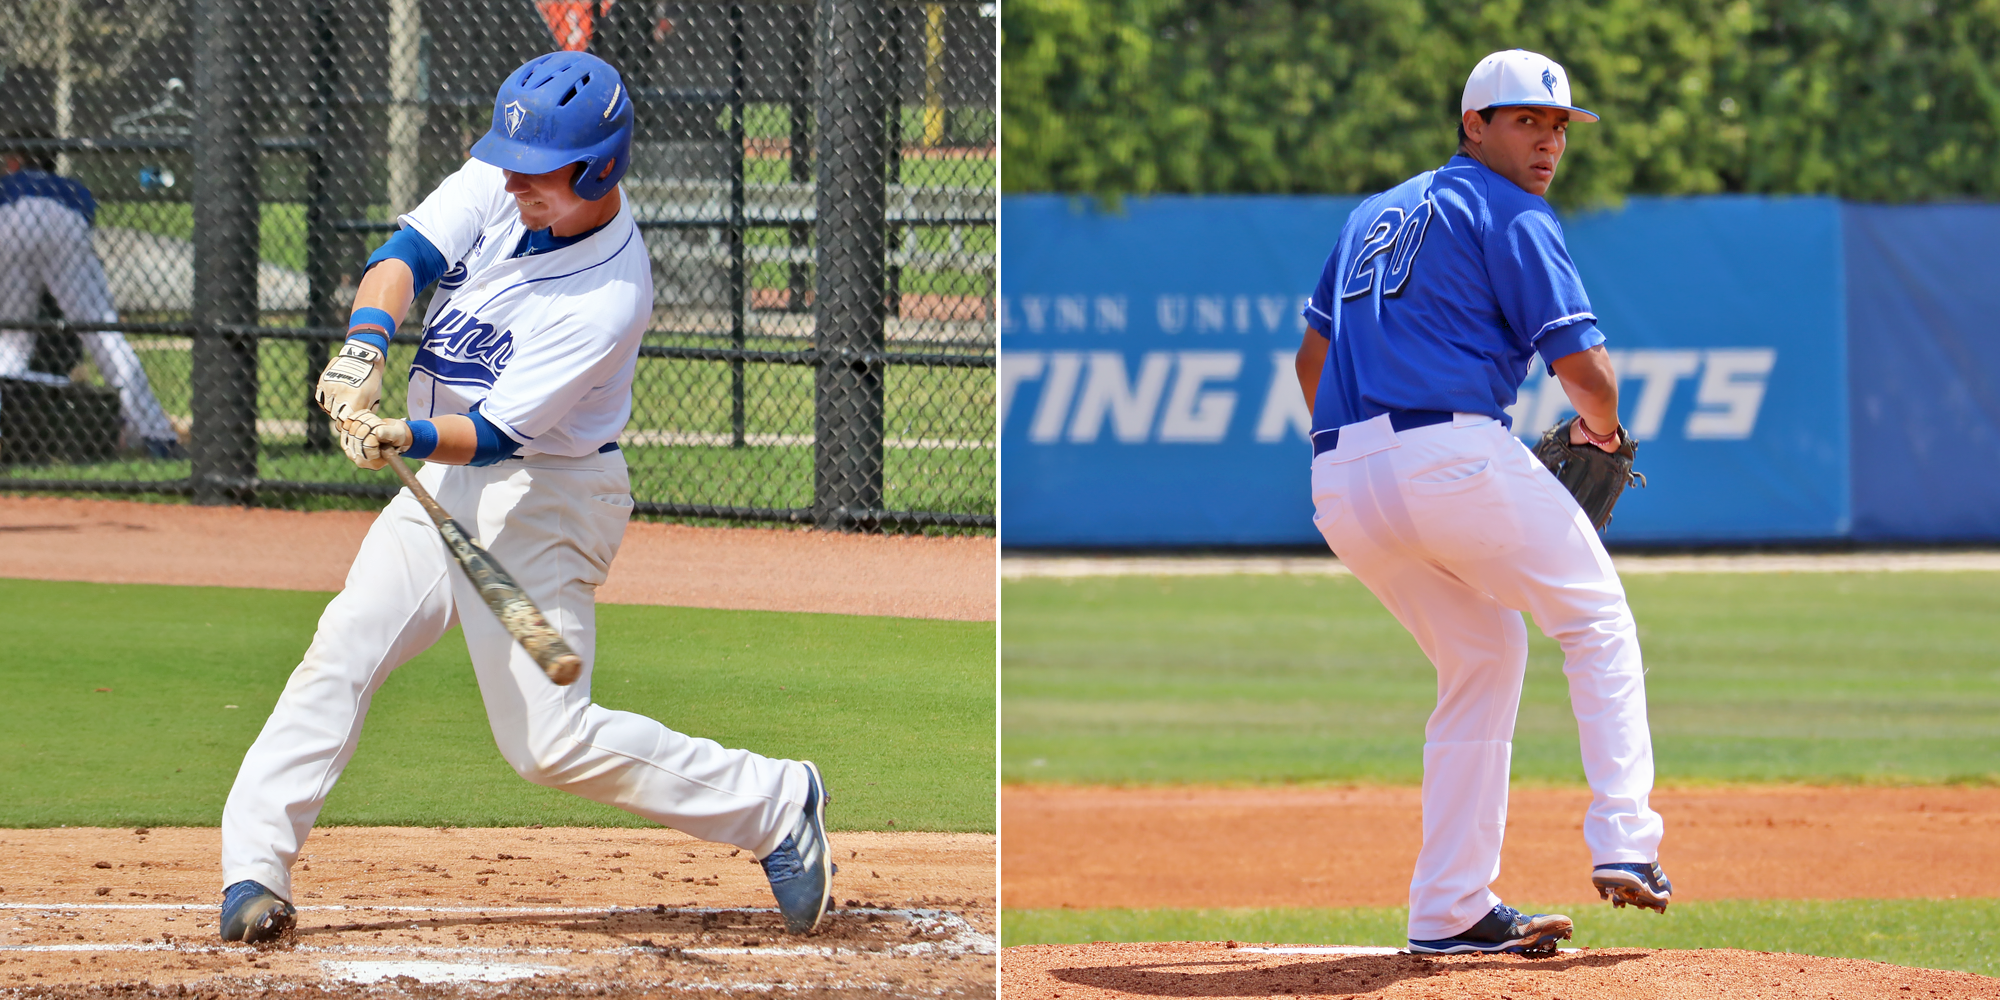 Dorrian, Beltran Garner NCBWA All-South Region Honors for Baseball